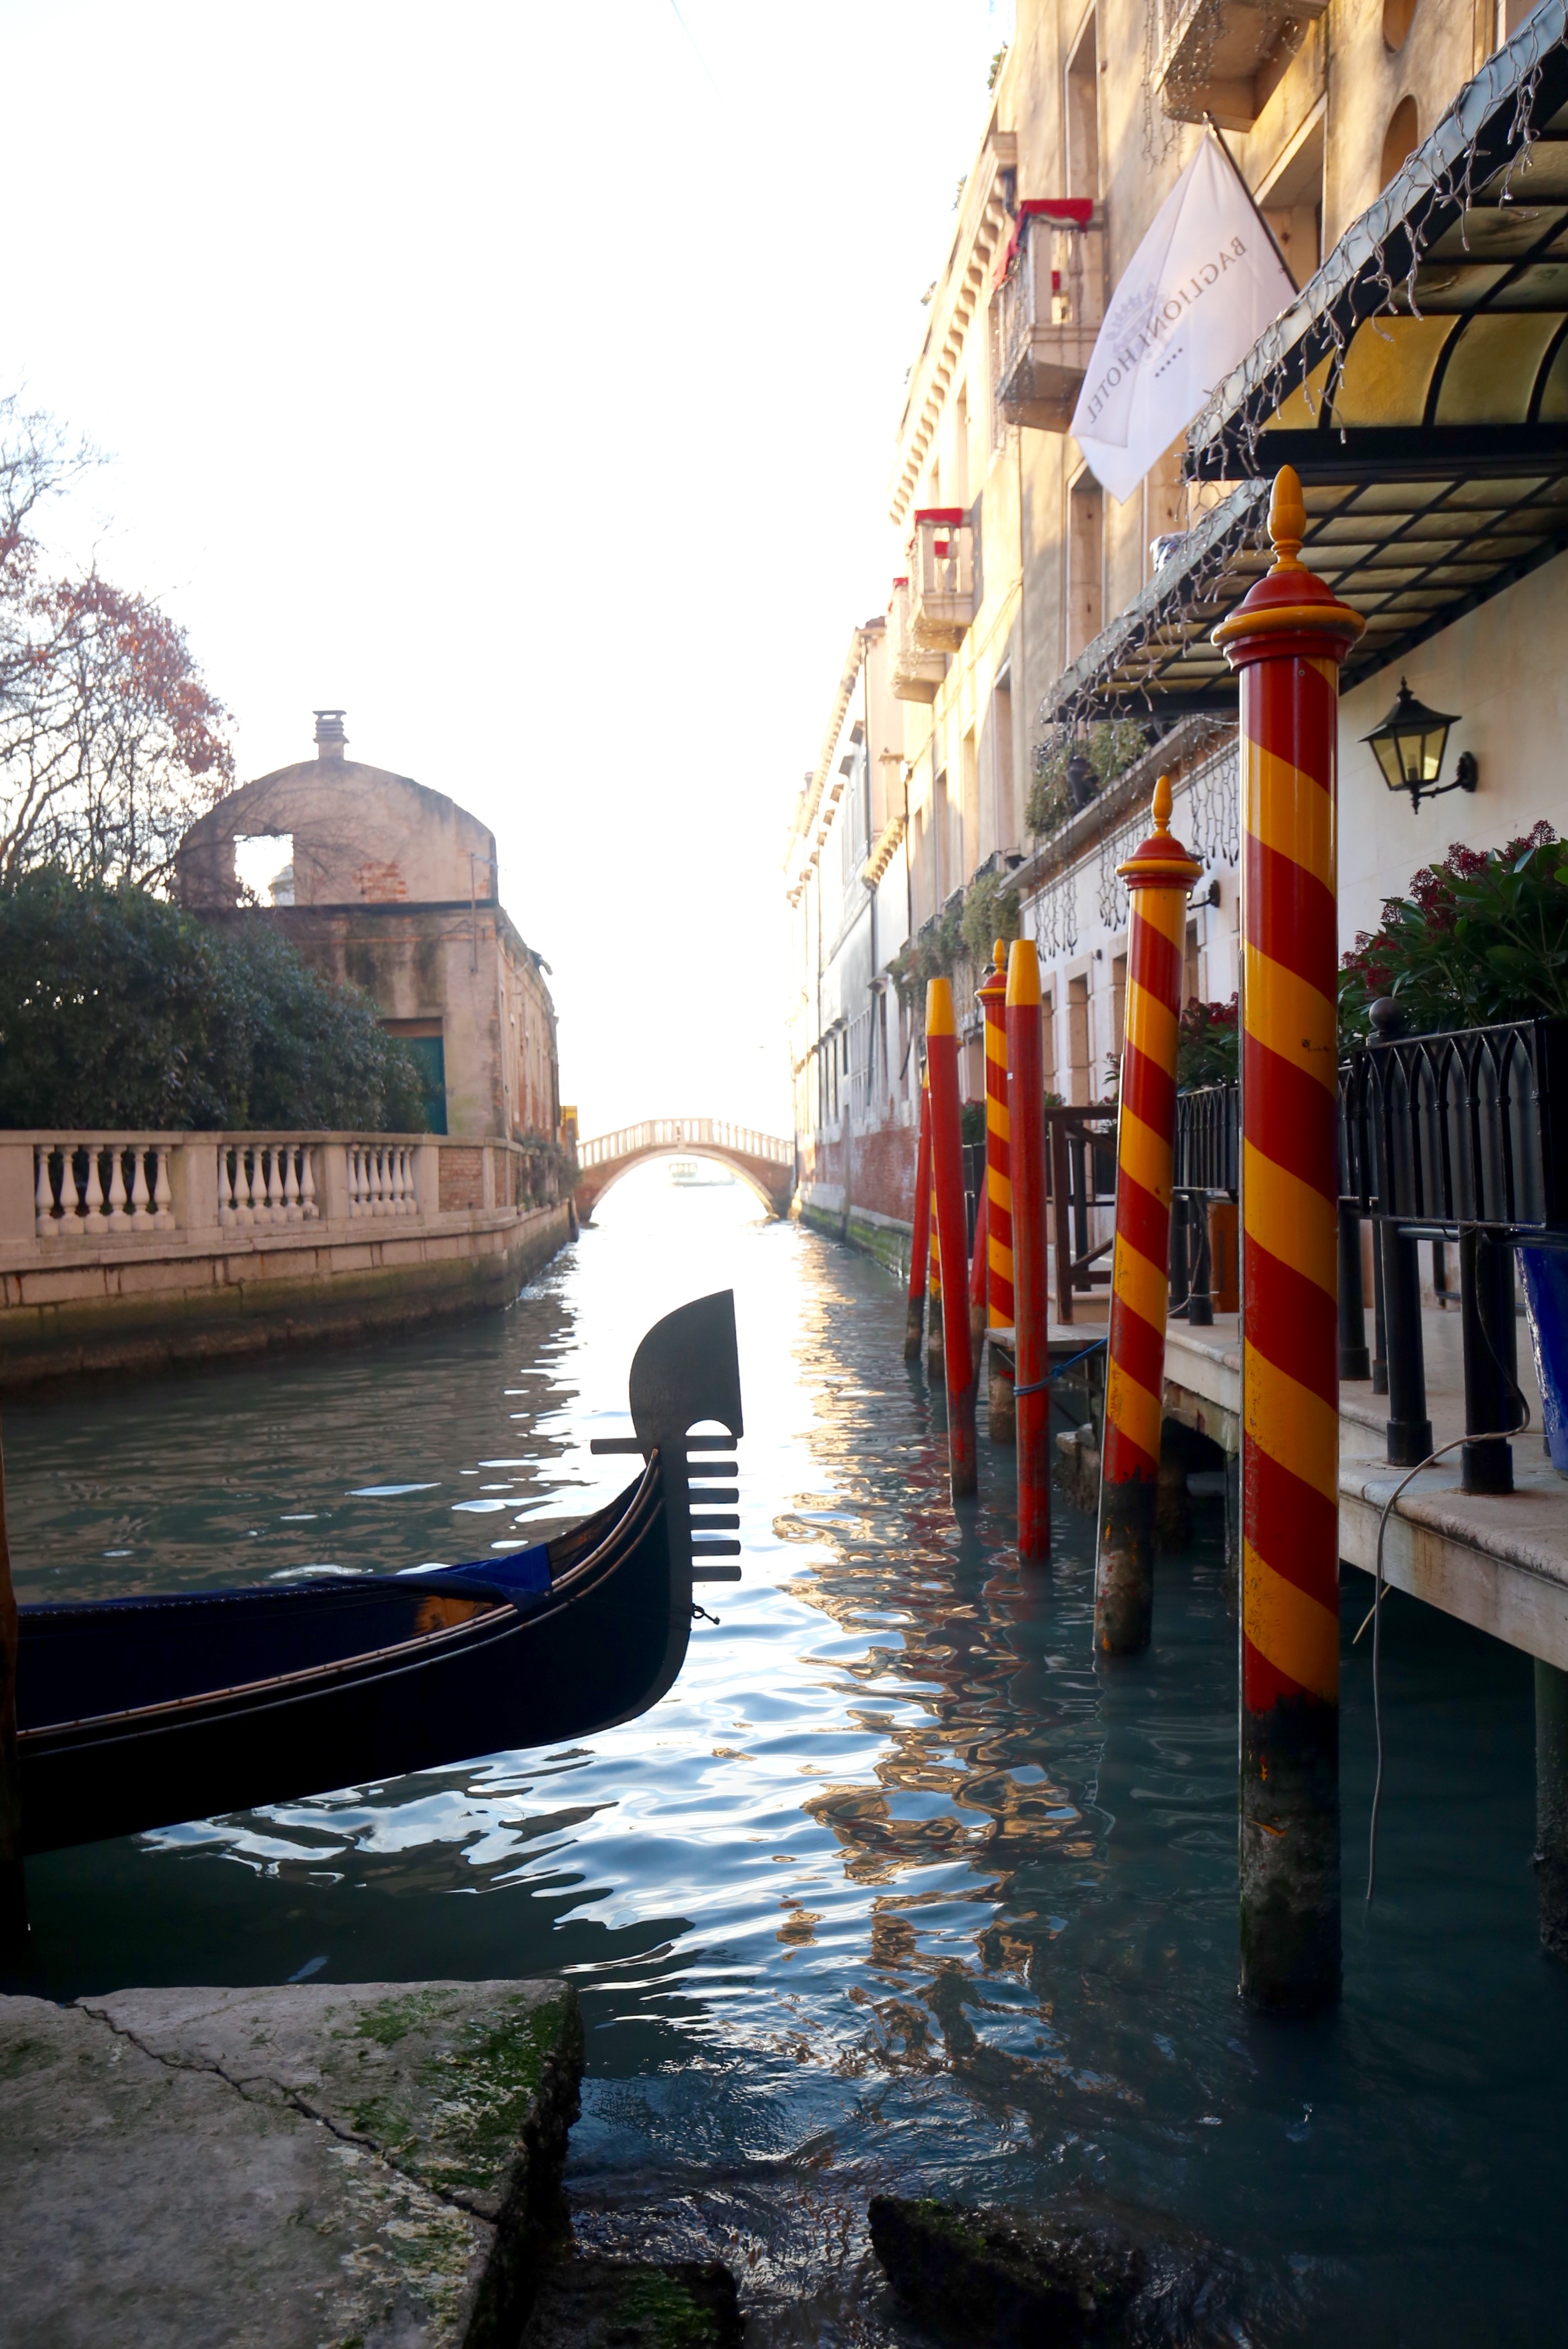 A gondola tail and red and yellow bricola poles.